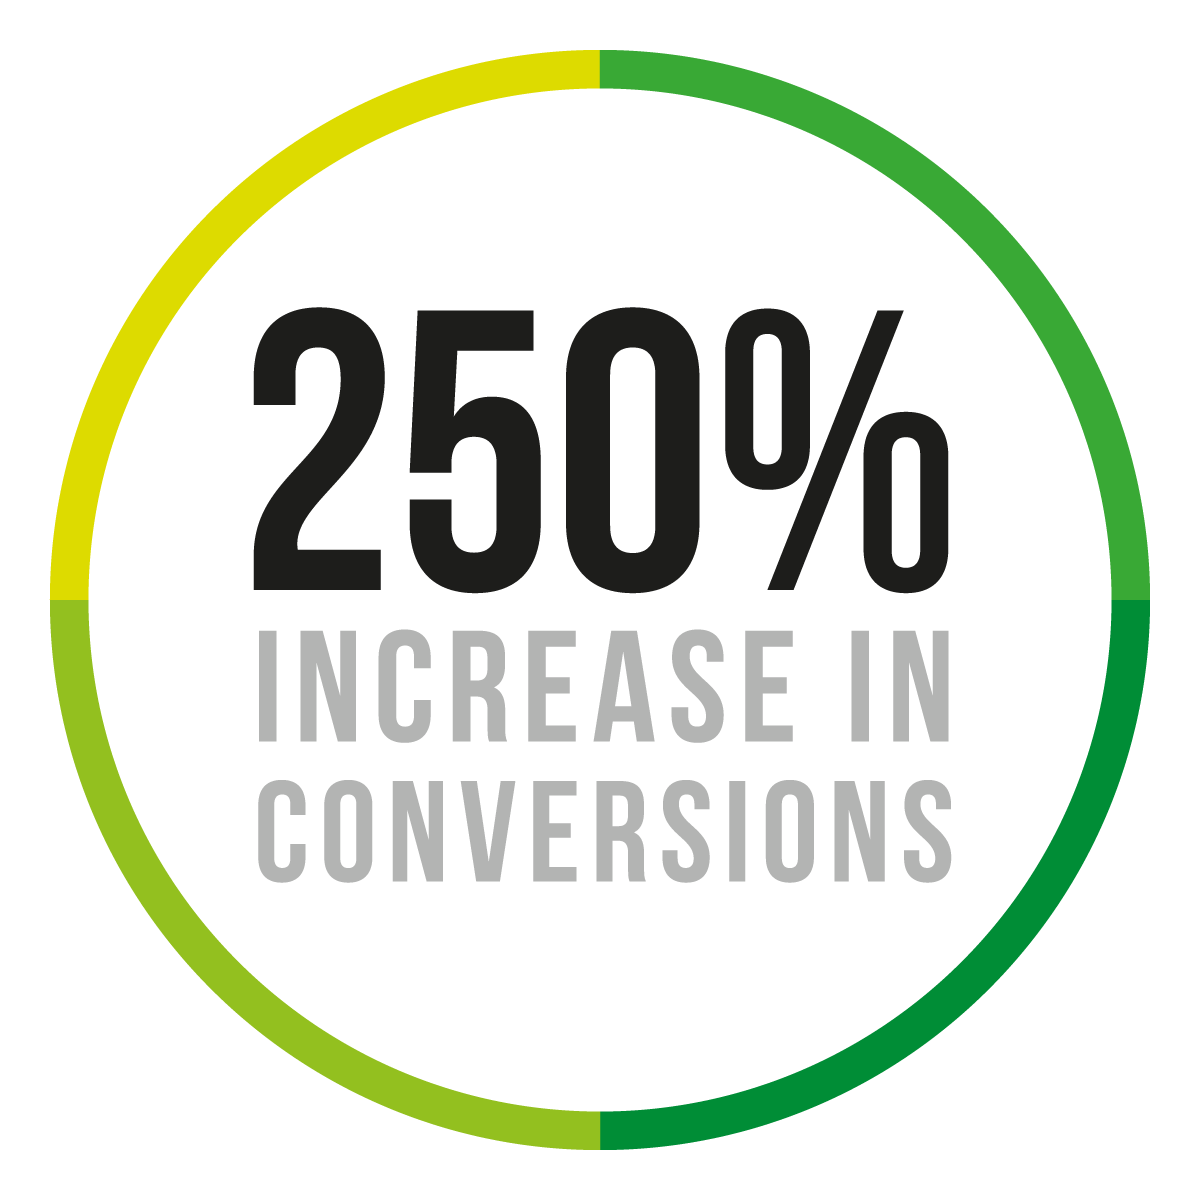 Low Carbon Energy - 250% Increase In Conversions